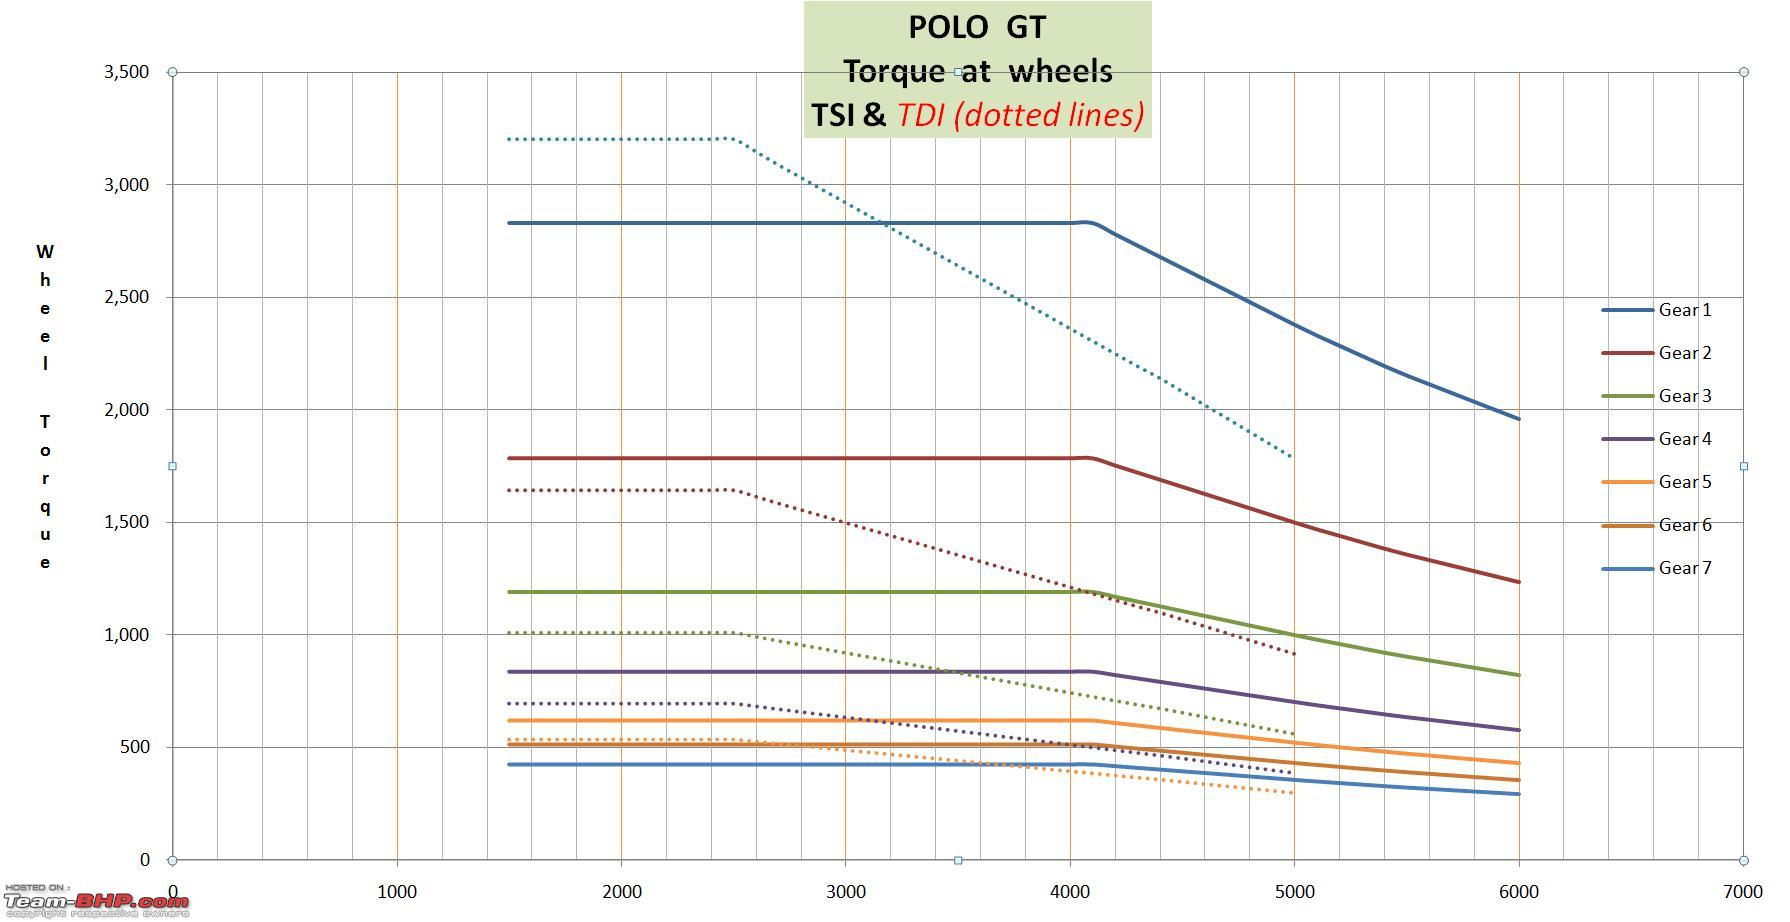 Vw Polo Tsi Tdi Simulated Parison Of Torque Power At The. Vw Polo Tsi Tdi Simulated Parison Of Torque Power At The Wheels. Wiring. Diagram Of Engine Power Curve For At Scoala.co